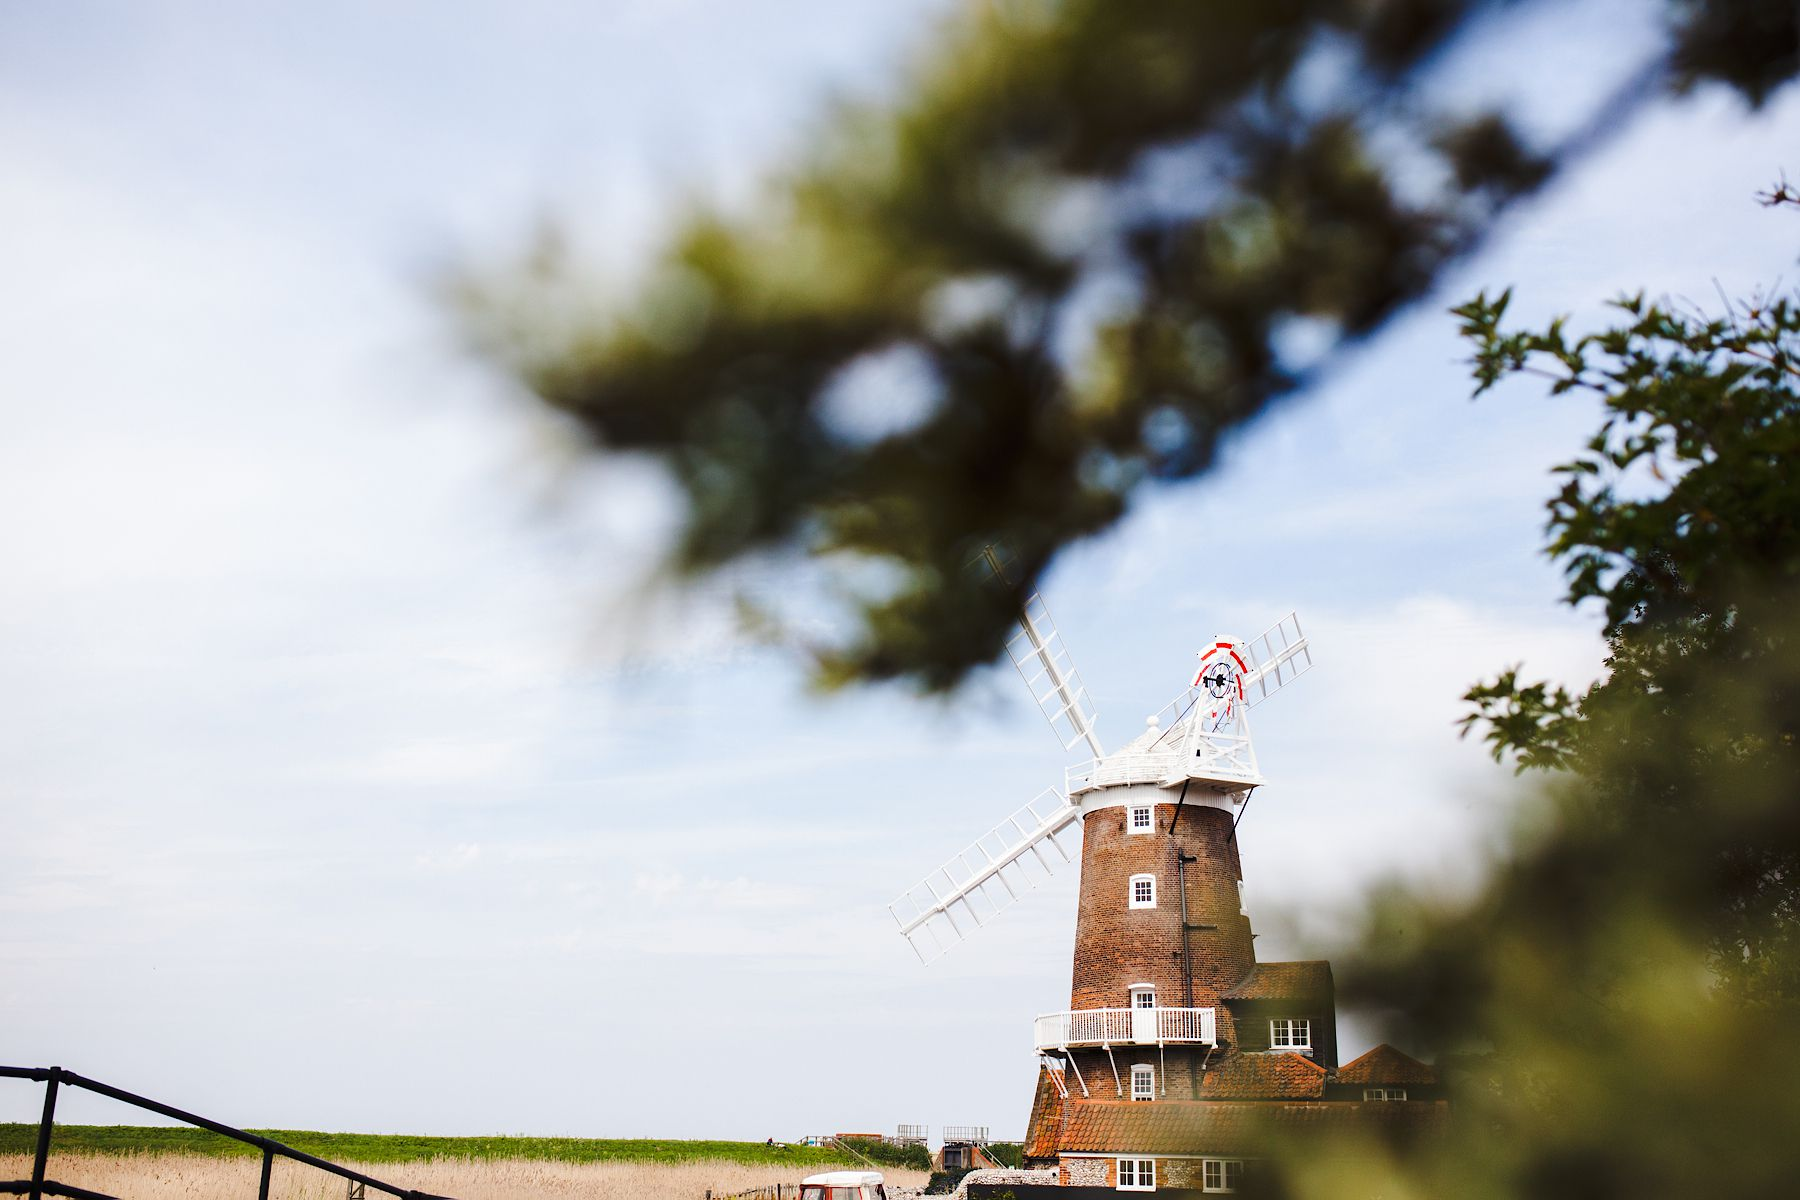 Cley Windmill North Norfolk Norwich Wedding Photography Small Intimate Venues Seaside 1